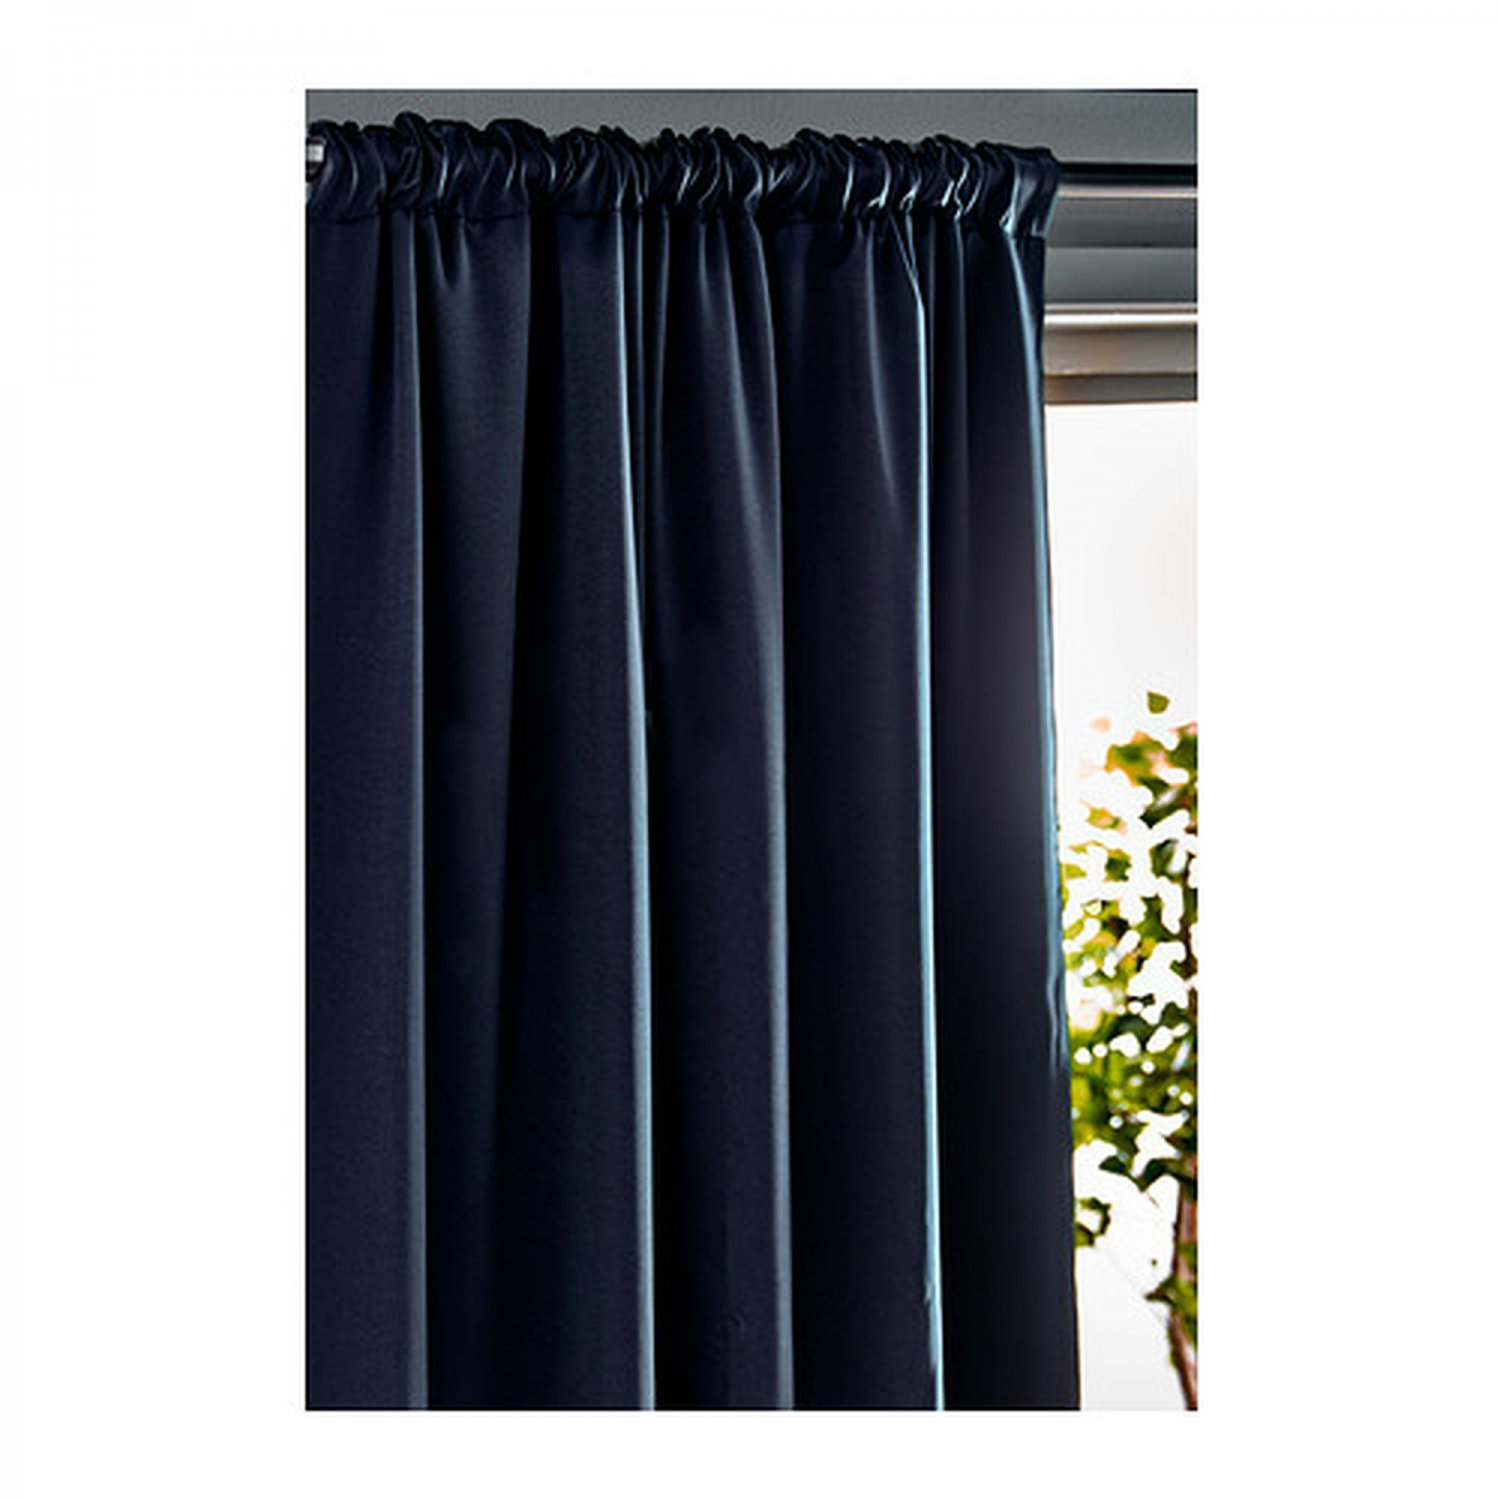 ikea werna curtains drapes 2 panels dark blue block out 98